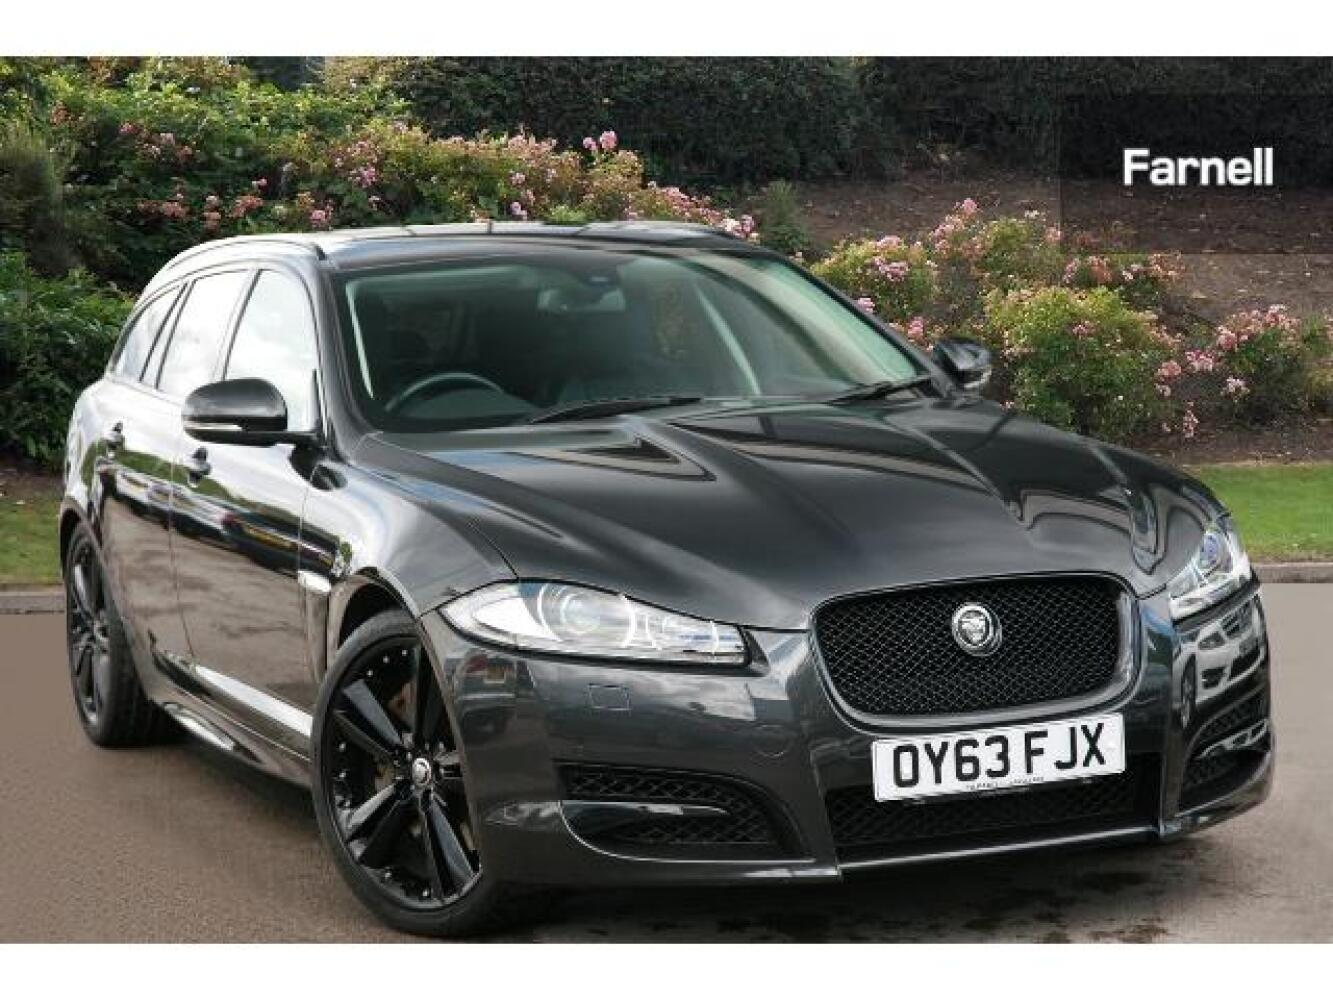 used jaguar xf 3 0d v6 s portfolio 5dr auto diesel estate for sale farnell jaguar. Black Bedroom Furniture Sets. Home Design Ideas